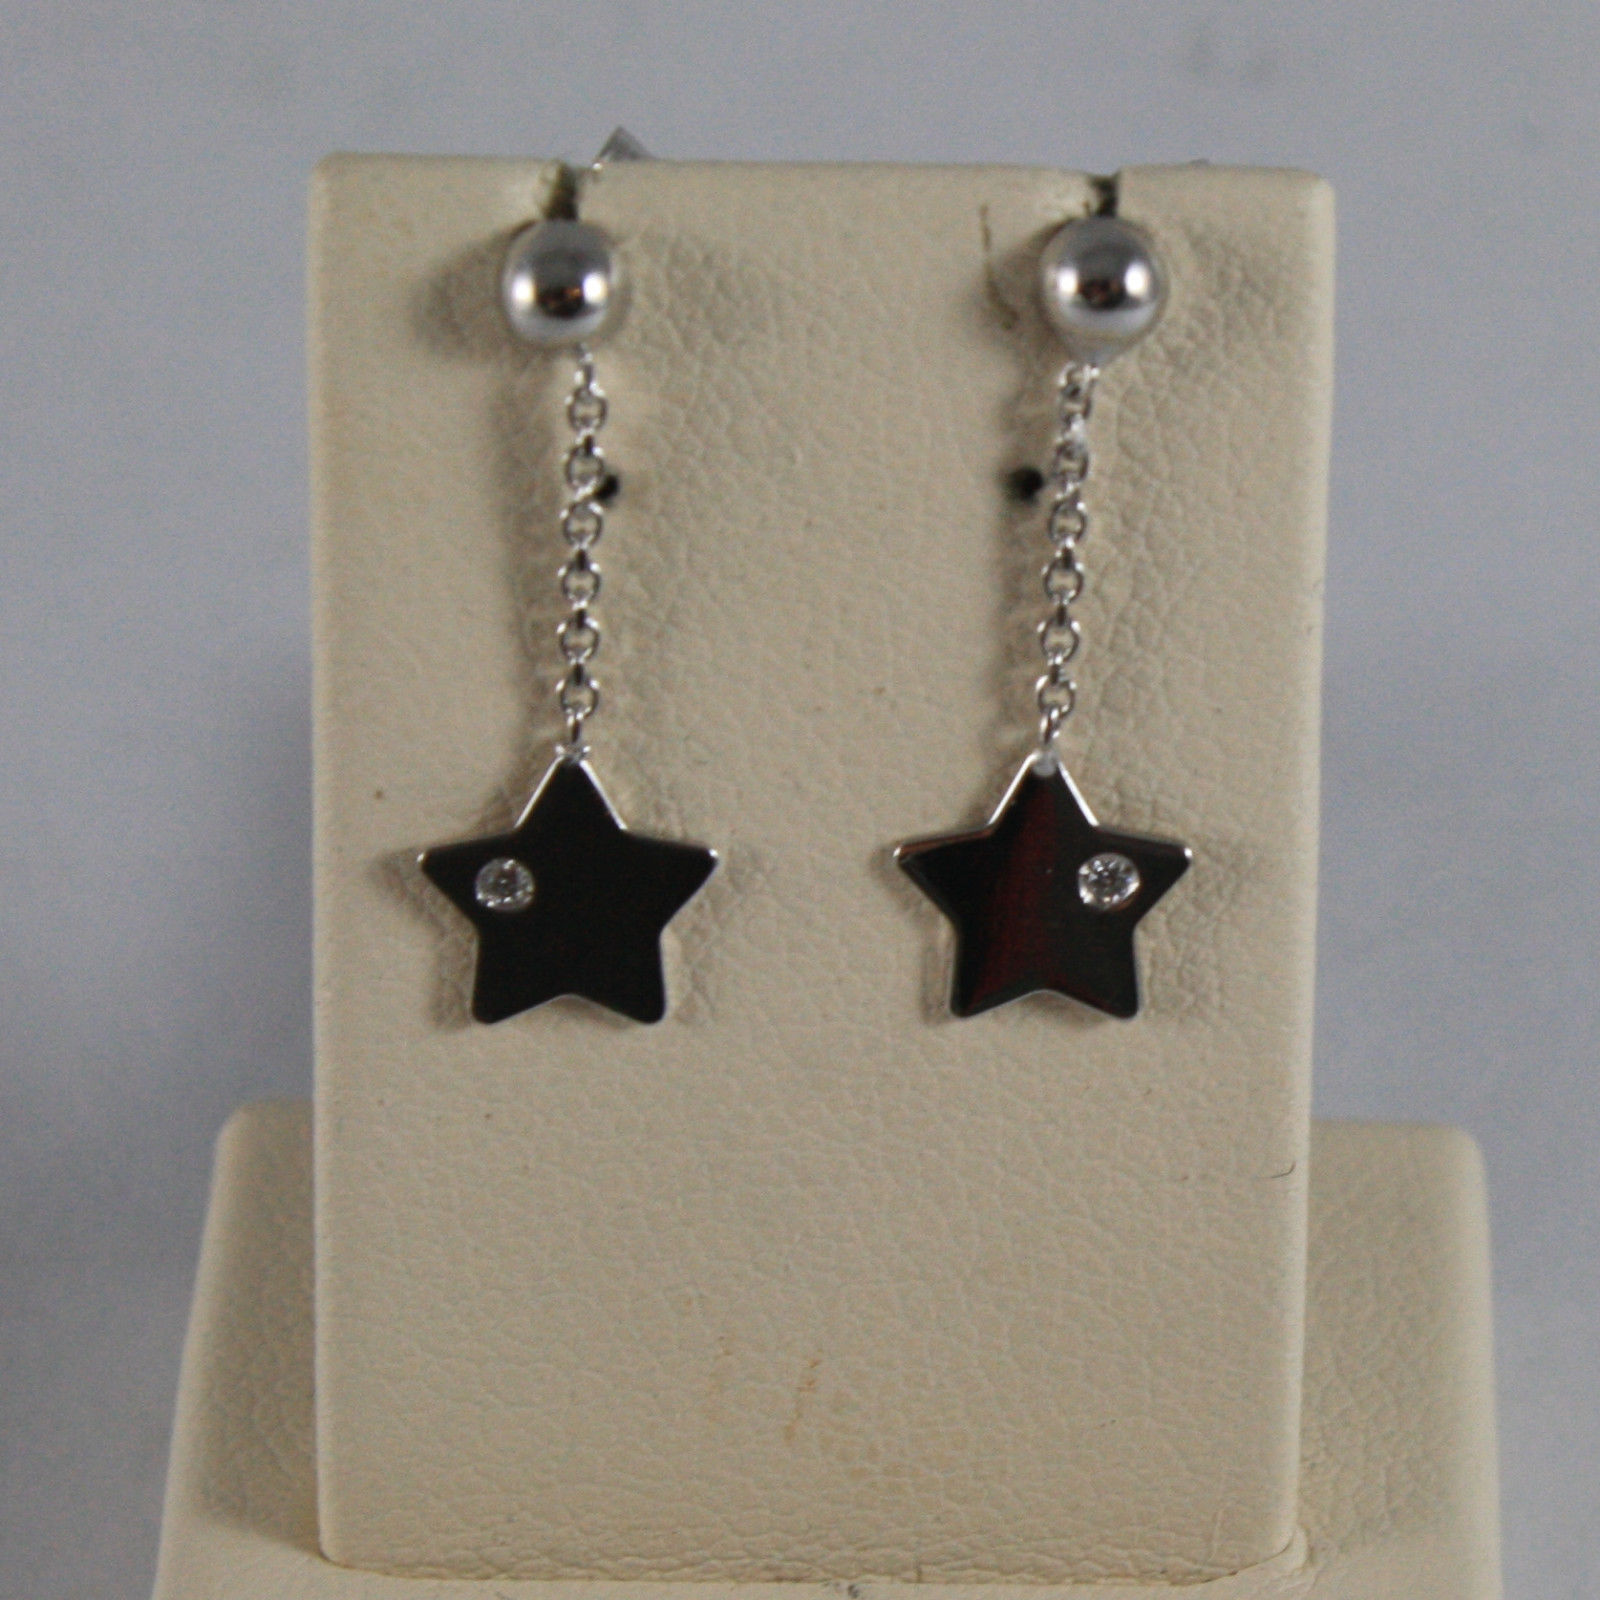 SOLID 18K WHITE GOLD EARRINGS, WITH STAR AND DIAMOND 0,02 CT, MADE IN ITALY